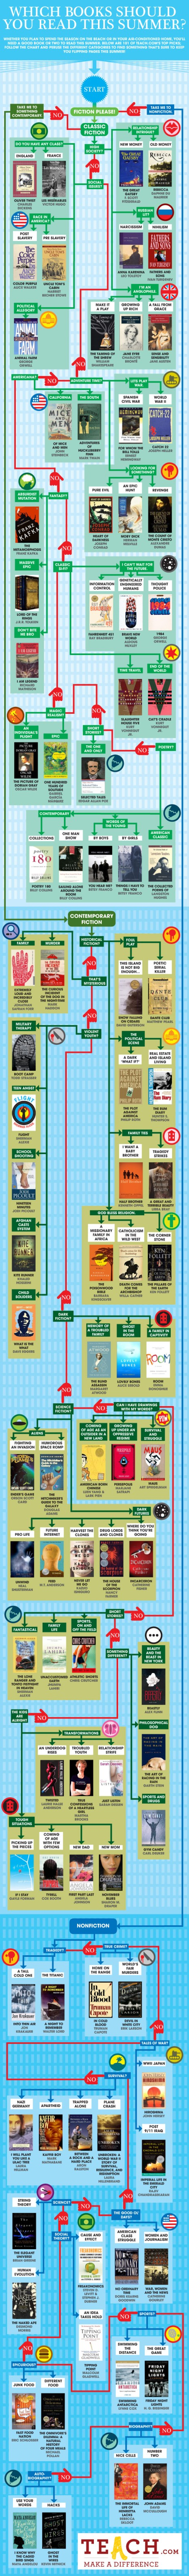 Summer Reading Flowchart: What Should You Read On Your Break? | Teach.com